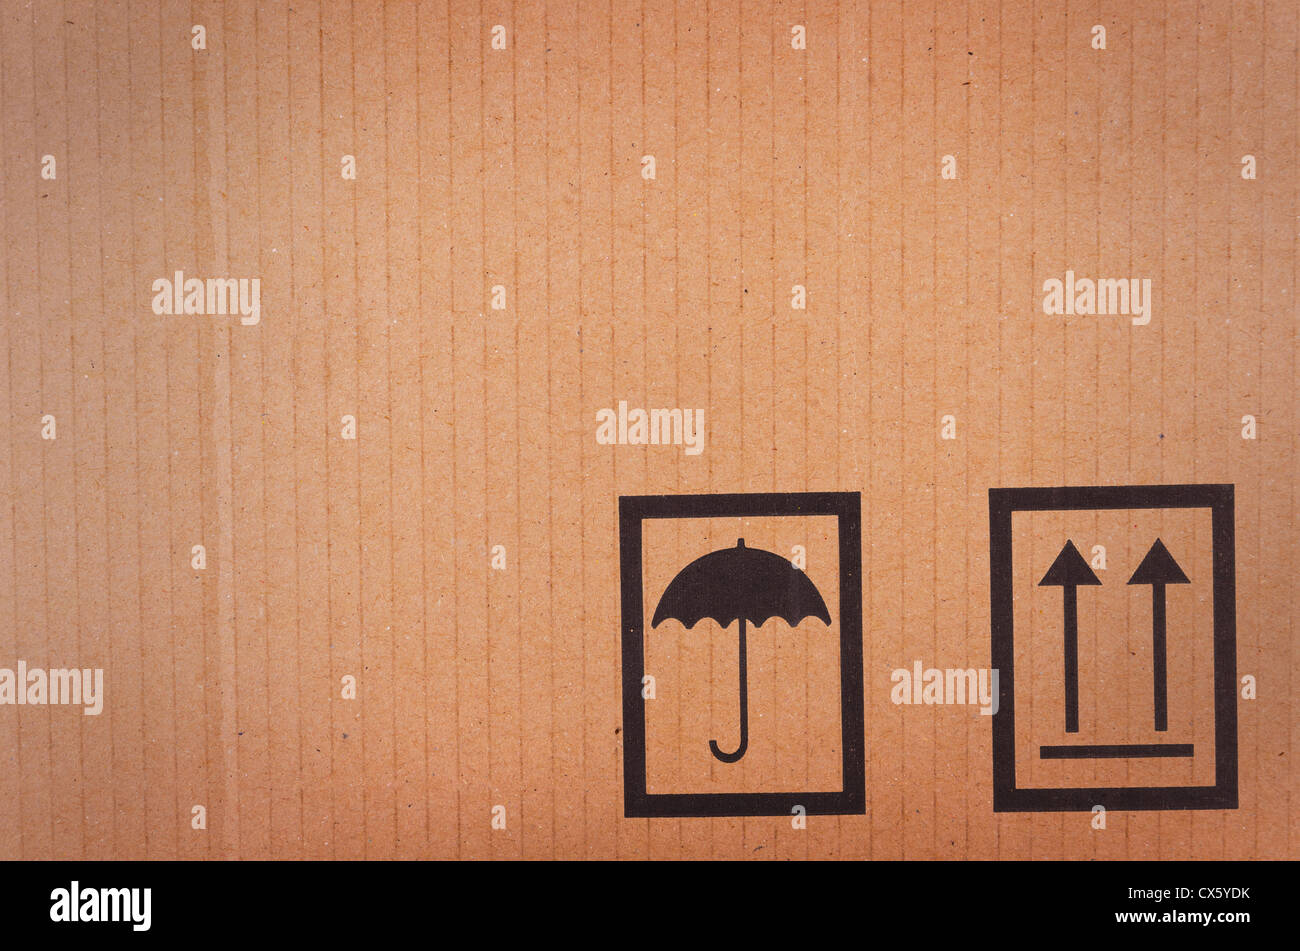 Cardboard background with shipping icons - Stock Image